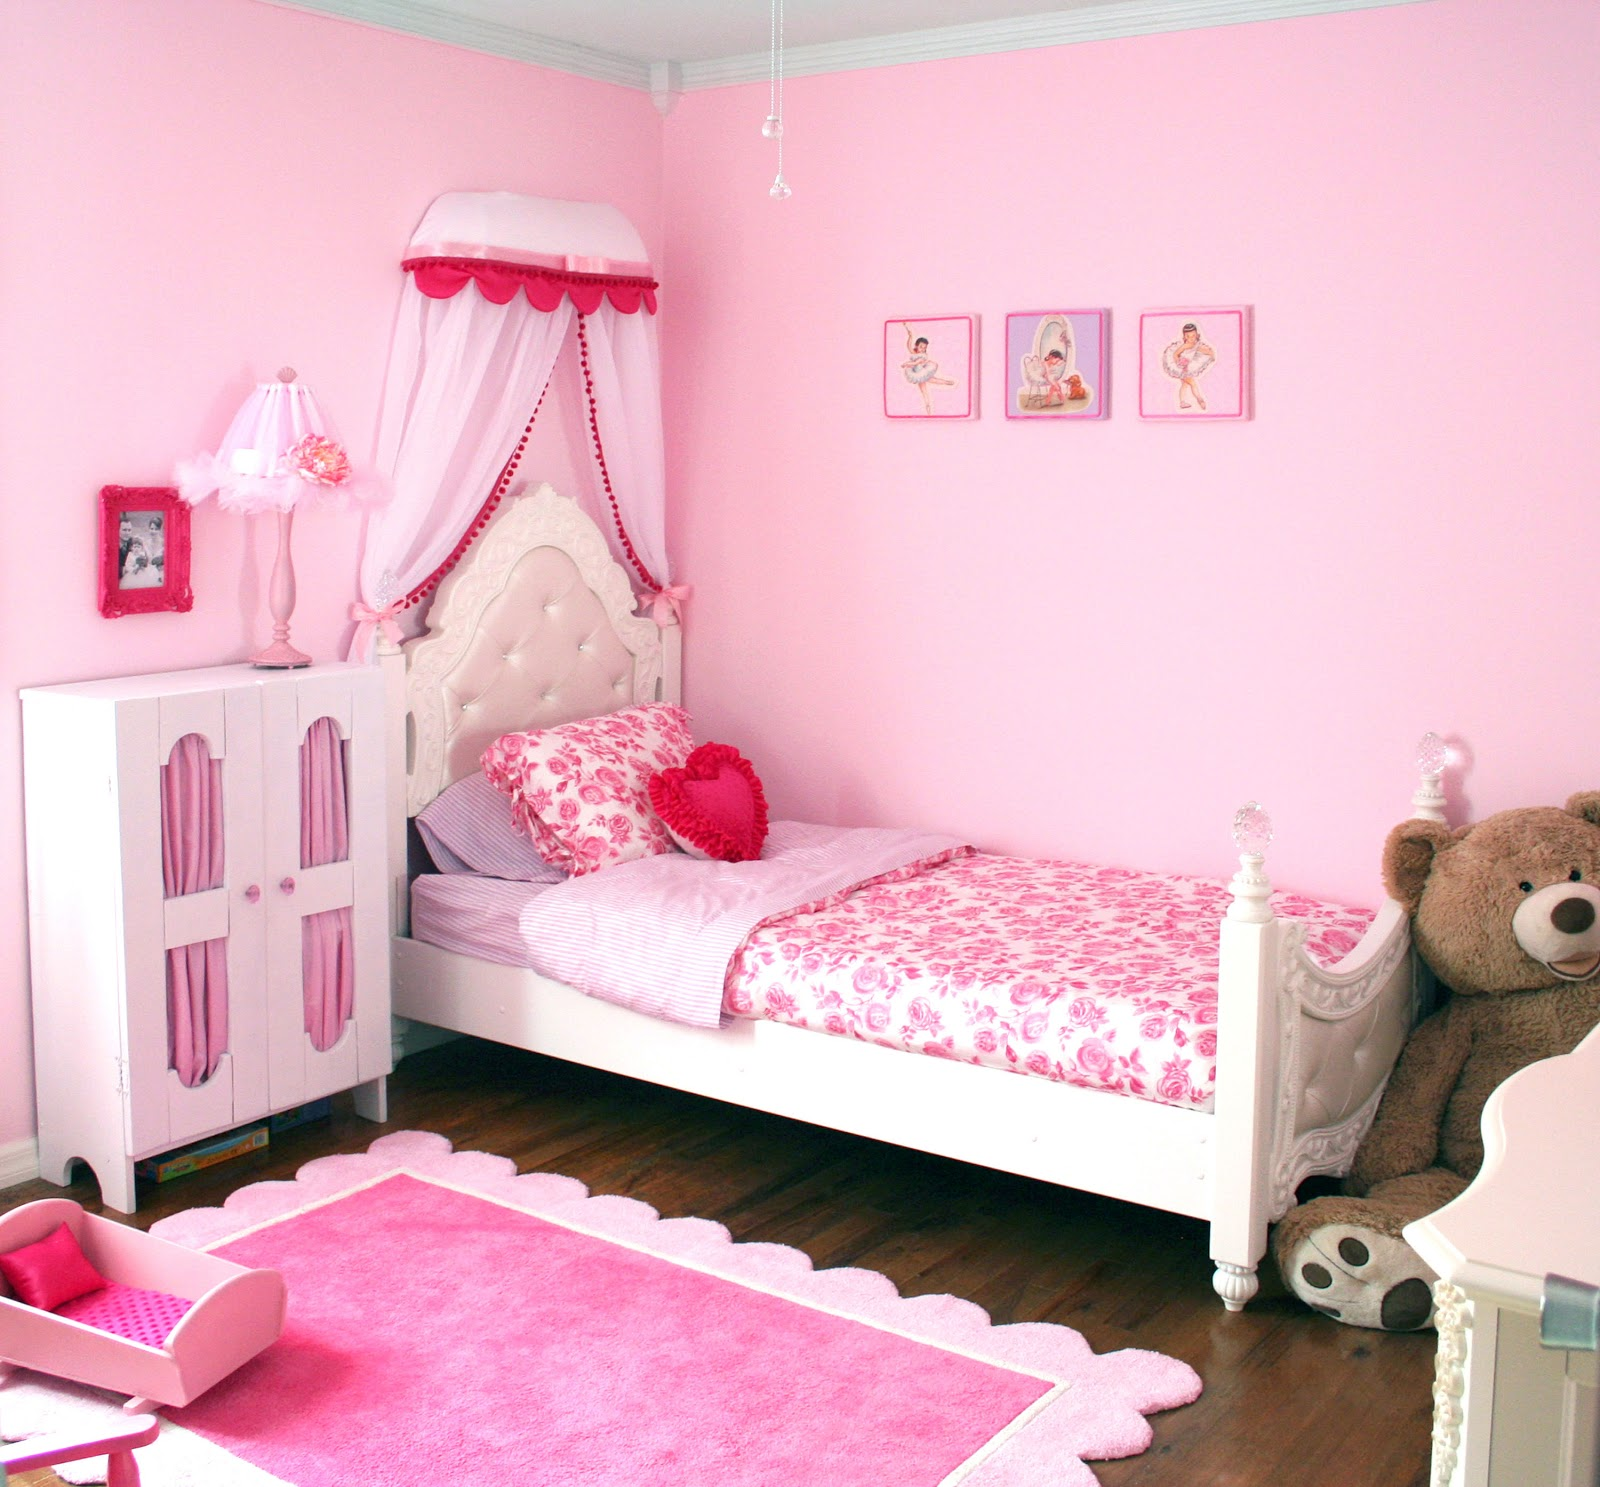 Amelia S Room Toddler Bedroom: Moms Eat Cold Food: Toddler Princess Room